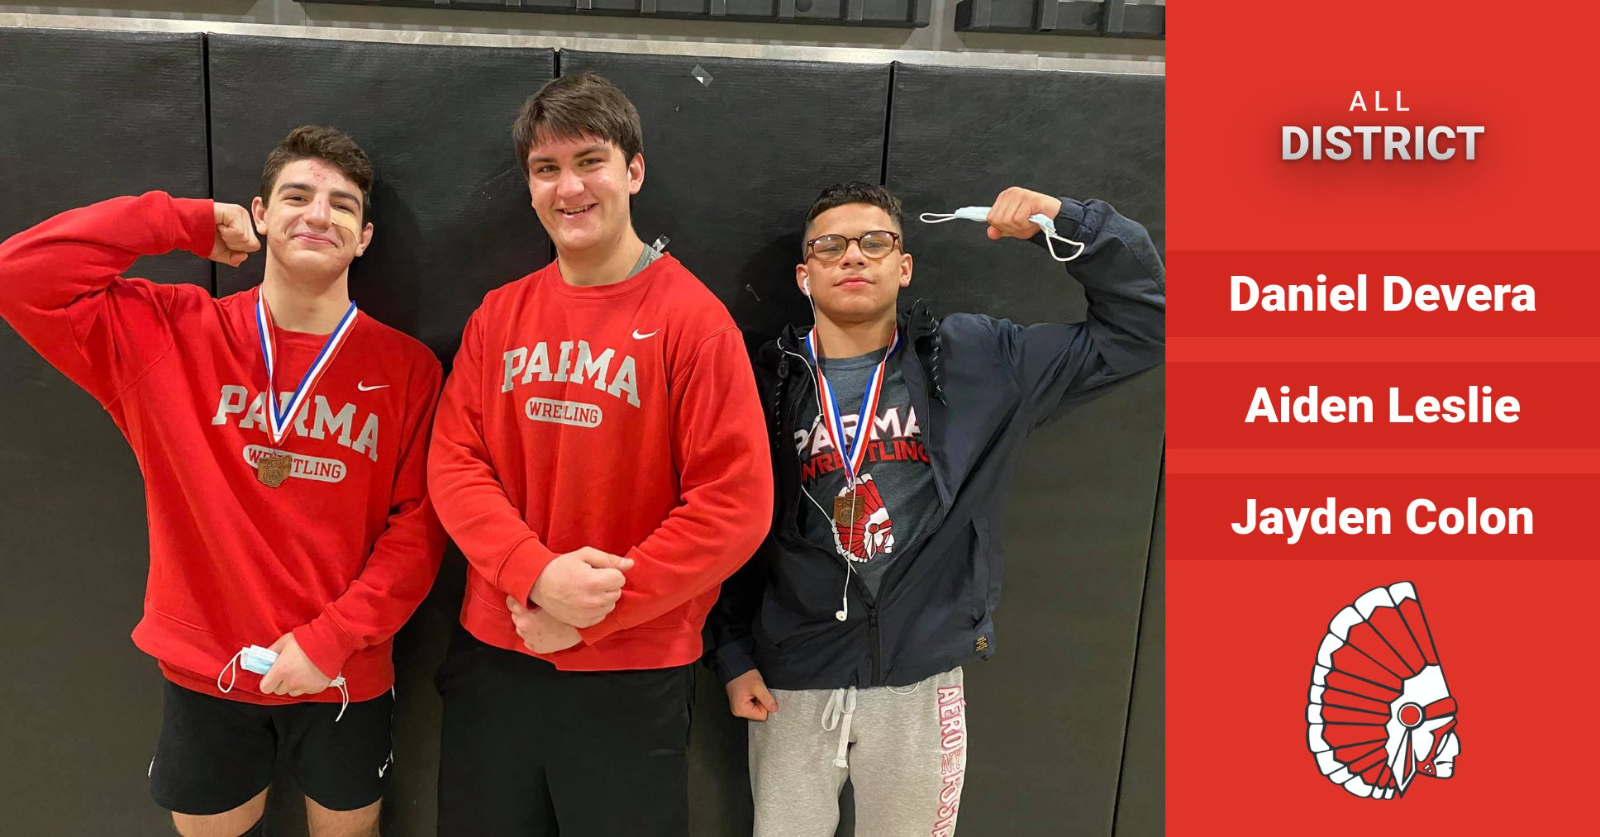 Congratulations to our All-District Wrestlers